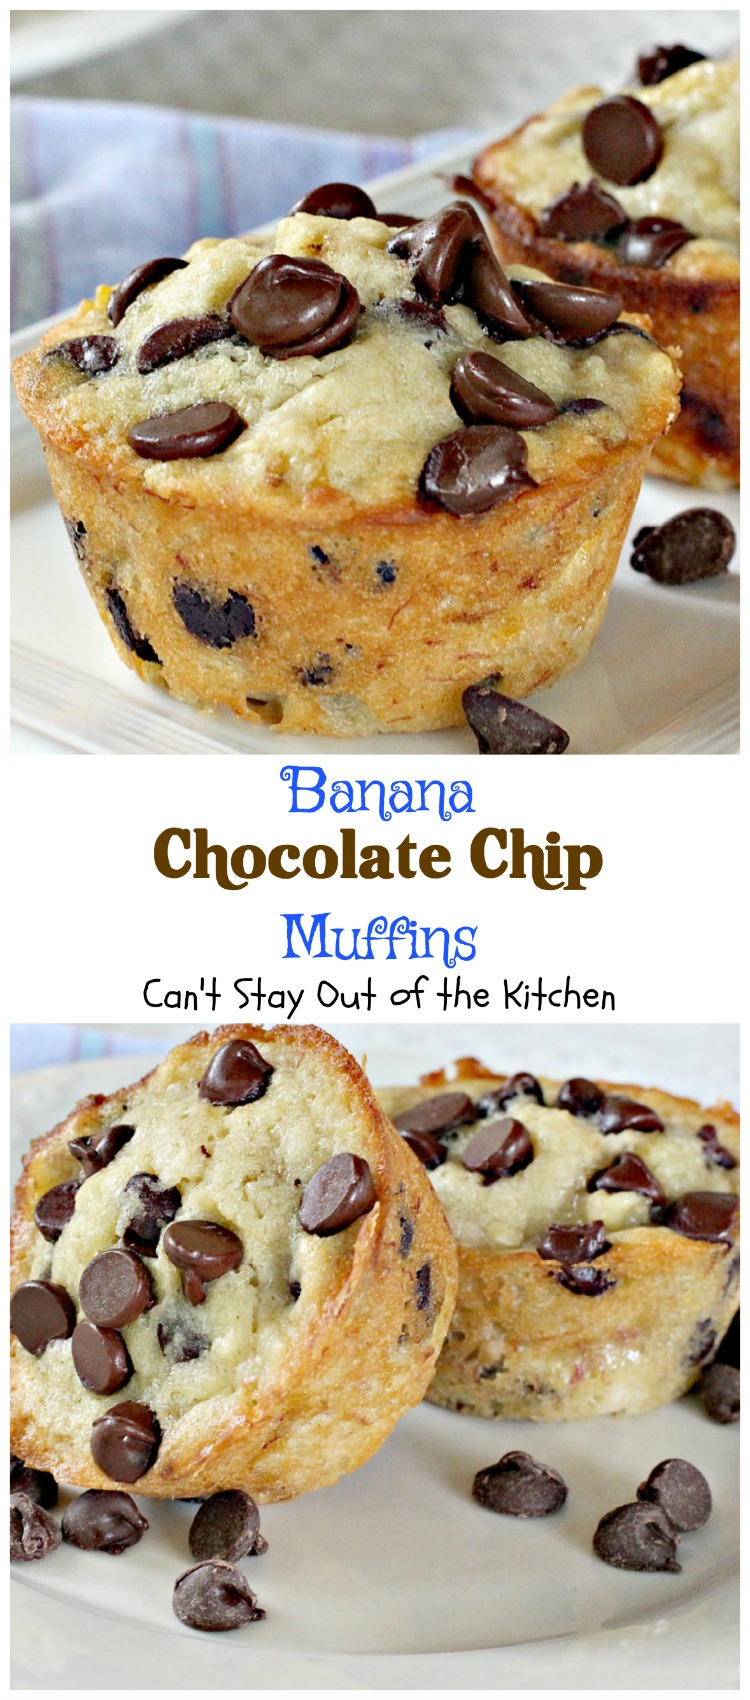 Banana Choco Chips Chocolate Chip Muffins Cant Stay Out Of The Kitchen One Bite